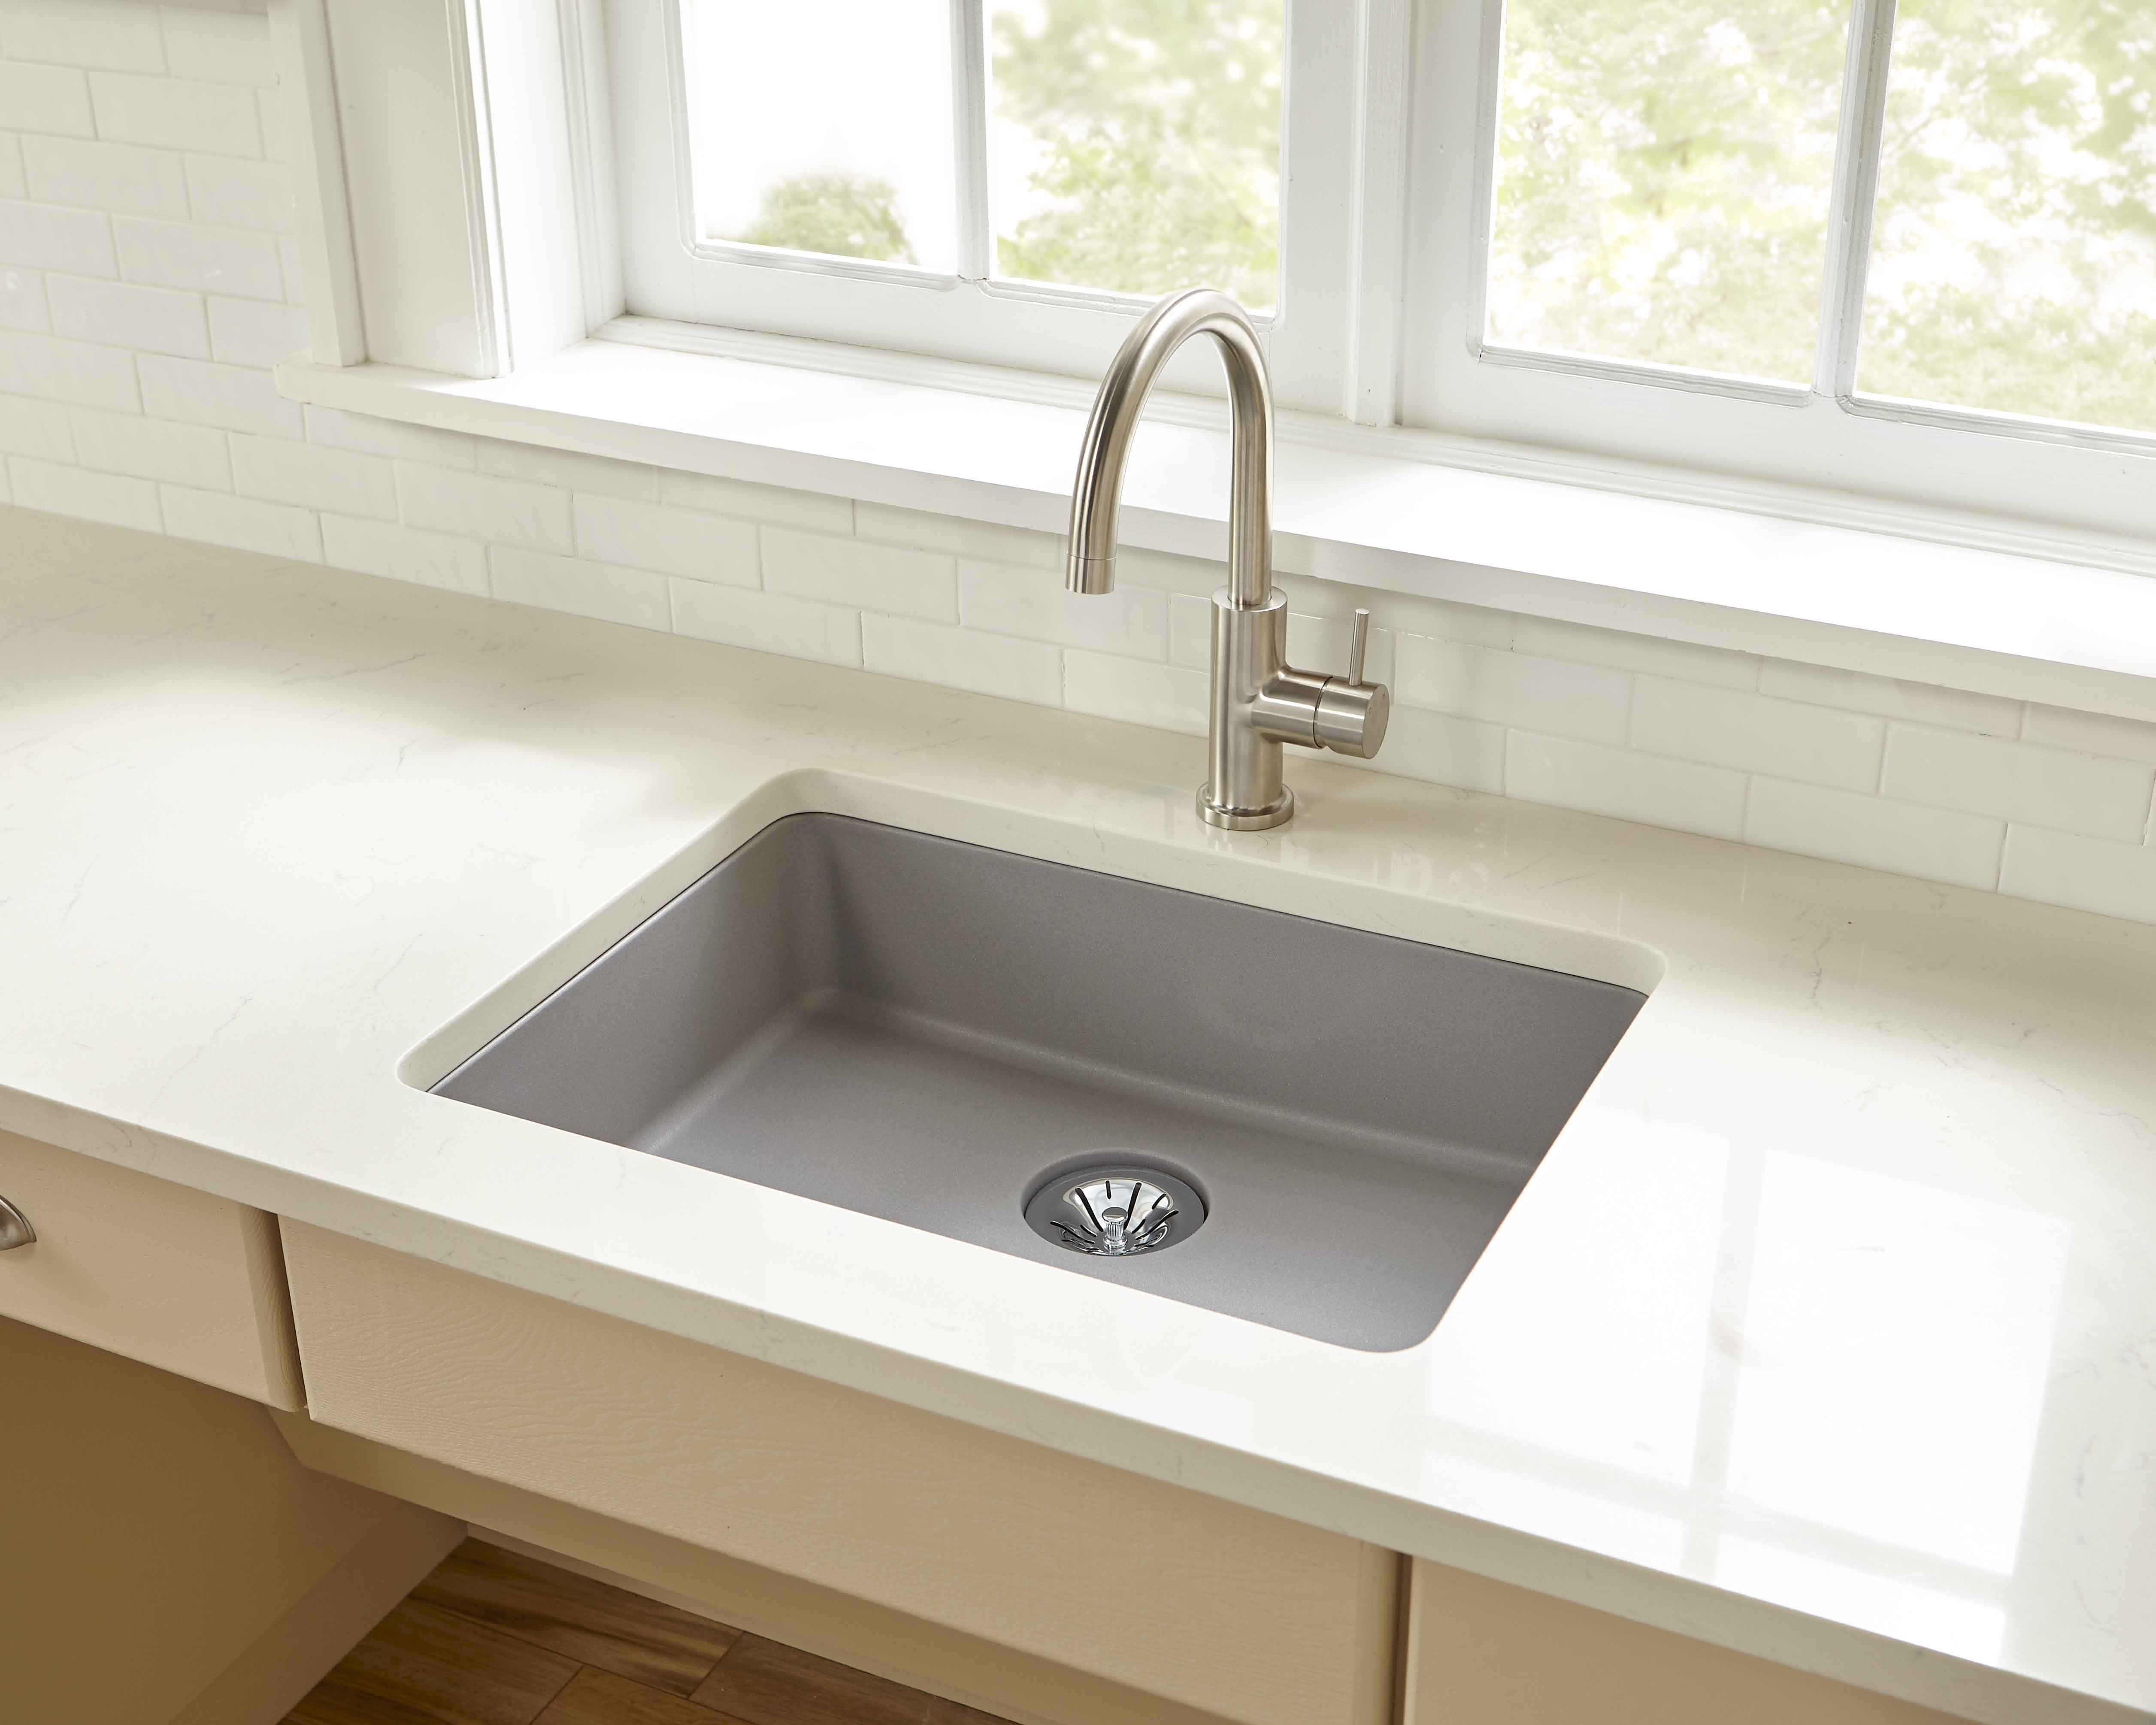 An Attractive And Accessible Option For Aging In Place Kitchen Design  Planning, These Striking Sinks